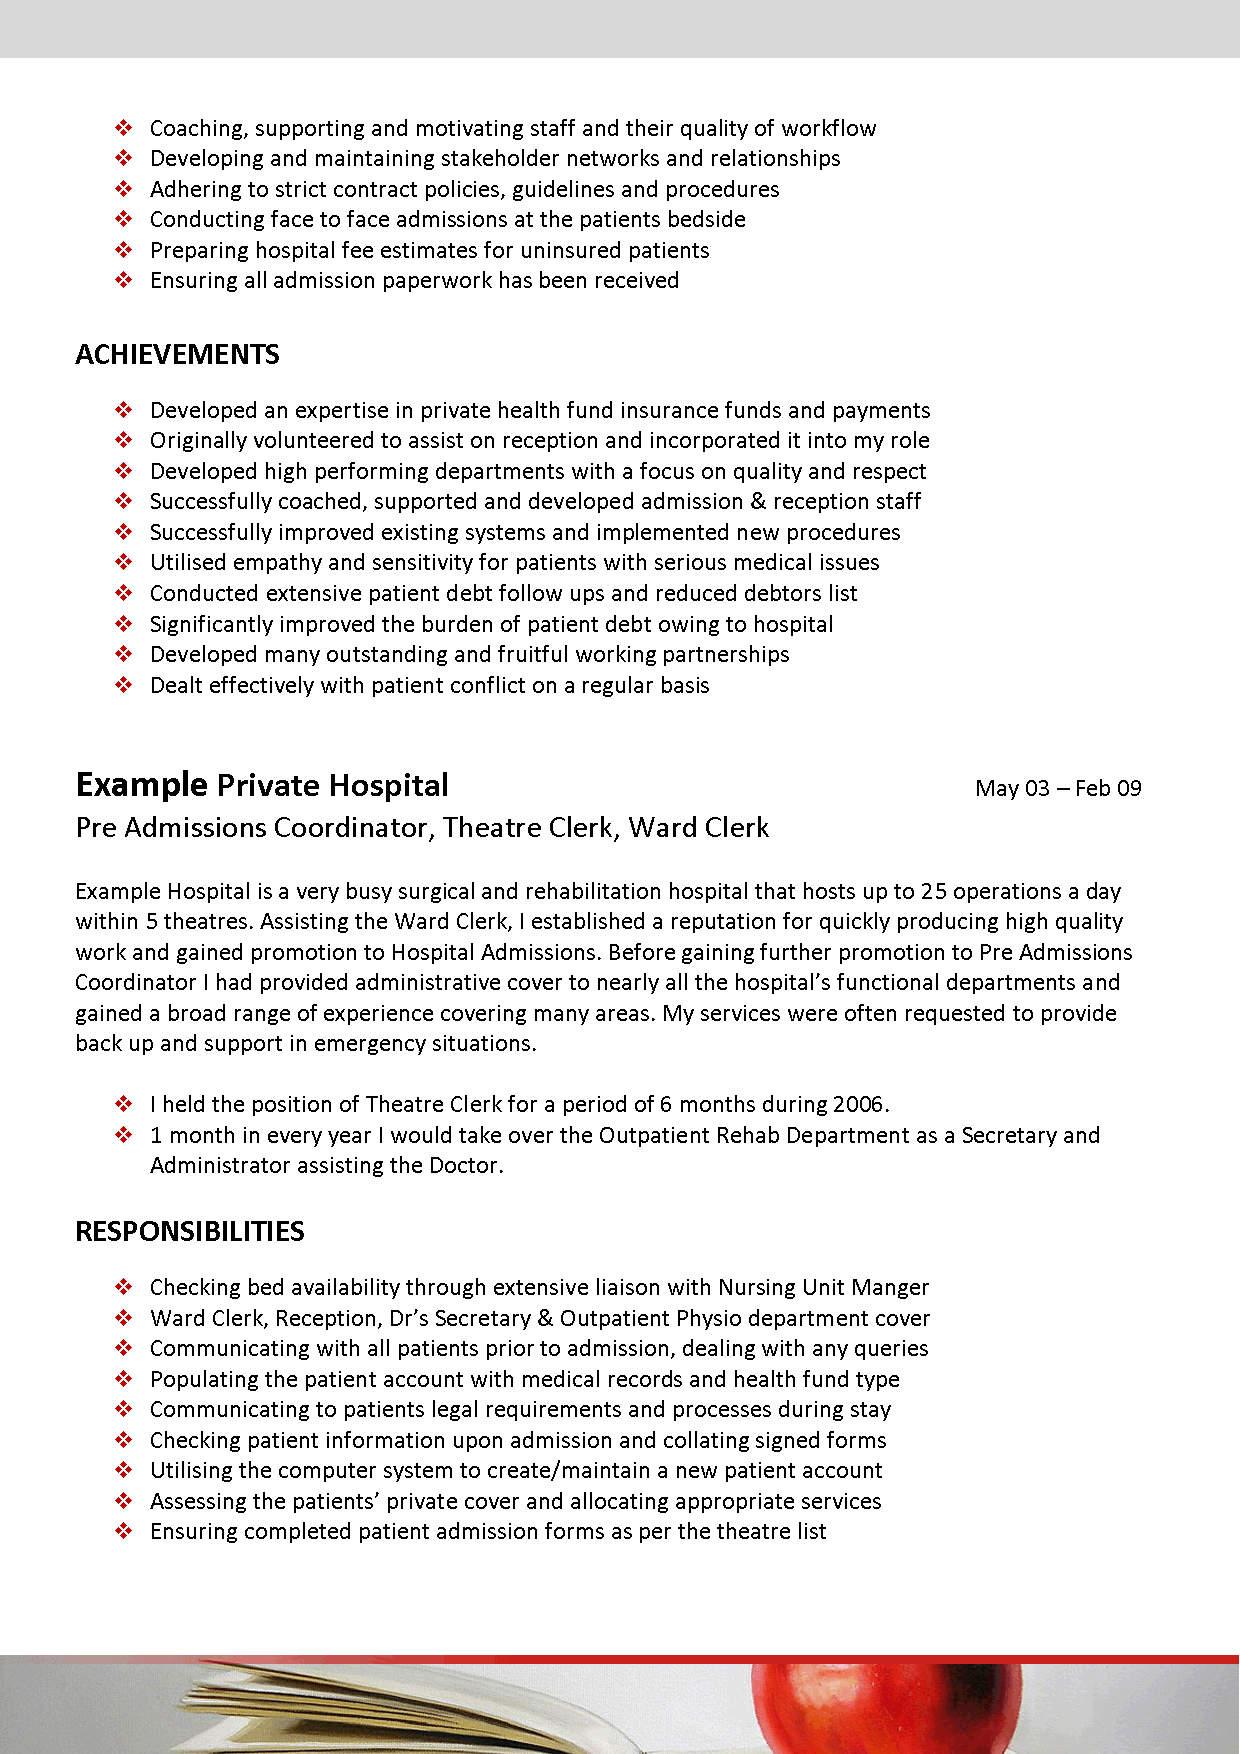 Best Service Customer 2013 Examples Resume